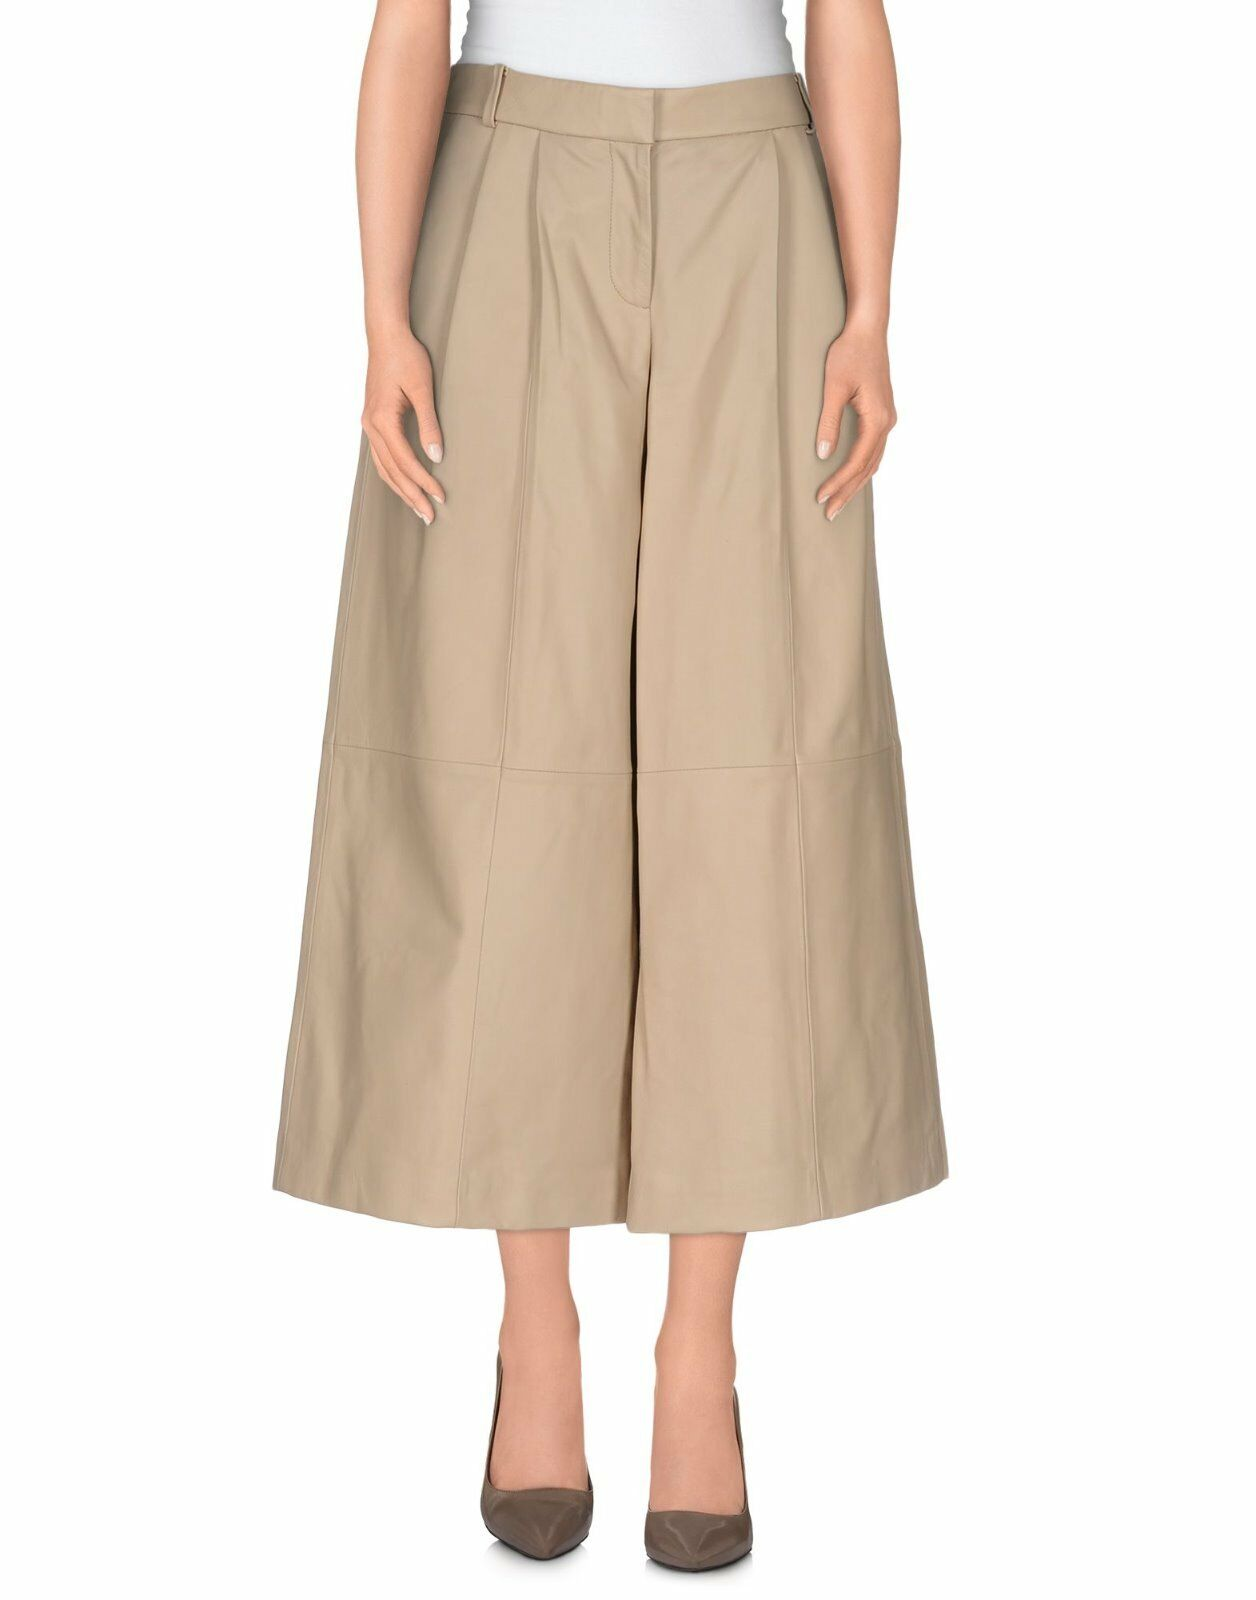 NWT TIBI BEIGE LEATHER 3 4 LENGTH WIDE LEG PANTS SIZE 2 ,024.00 Last one